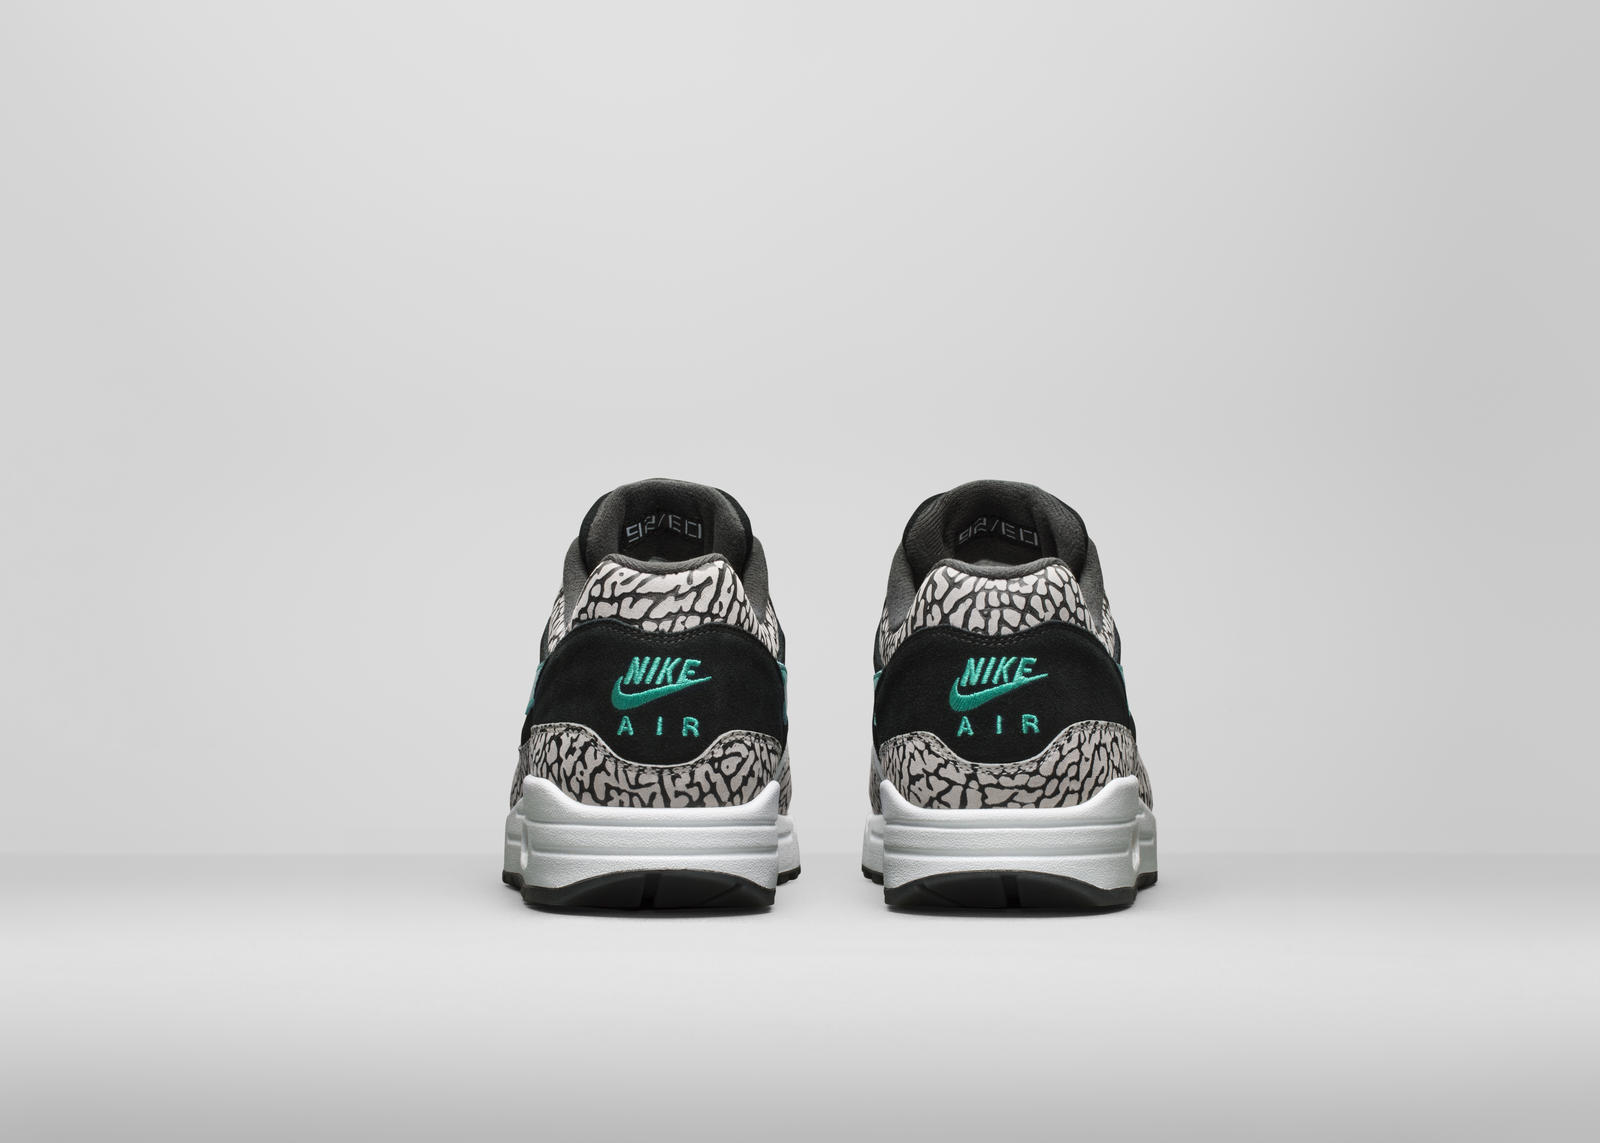 the best attitude c0f39 ef7f1 Easily one of the most memorable was the premium pair atmos turned out in  2007. Already famous worldwide for two initial Nike Air Max 1 designs (the  first ...